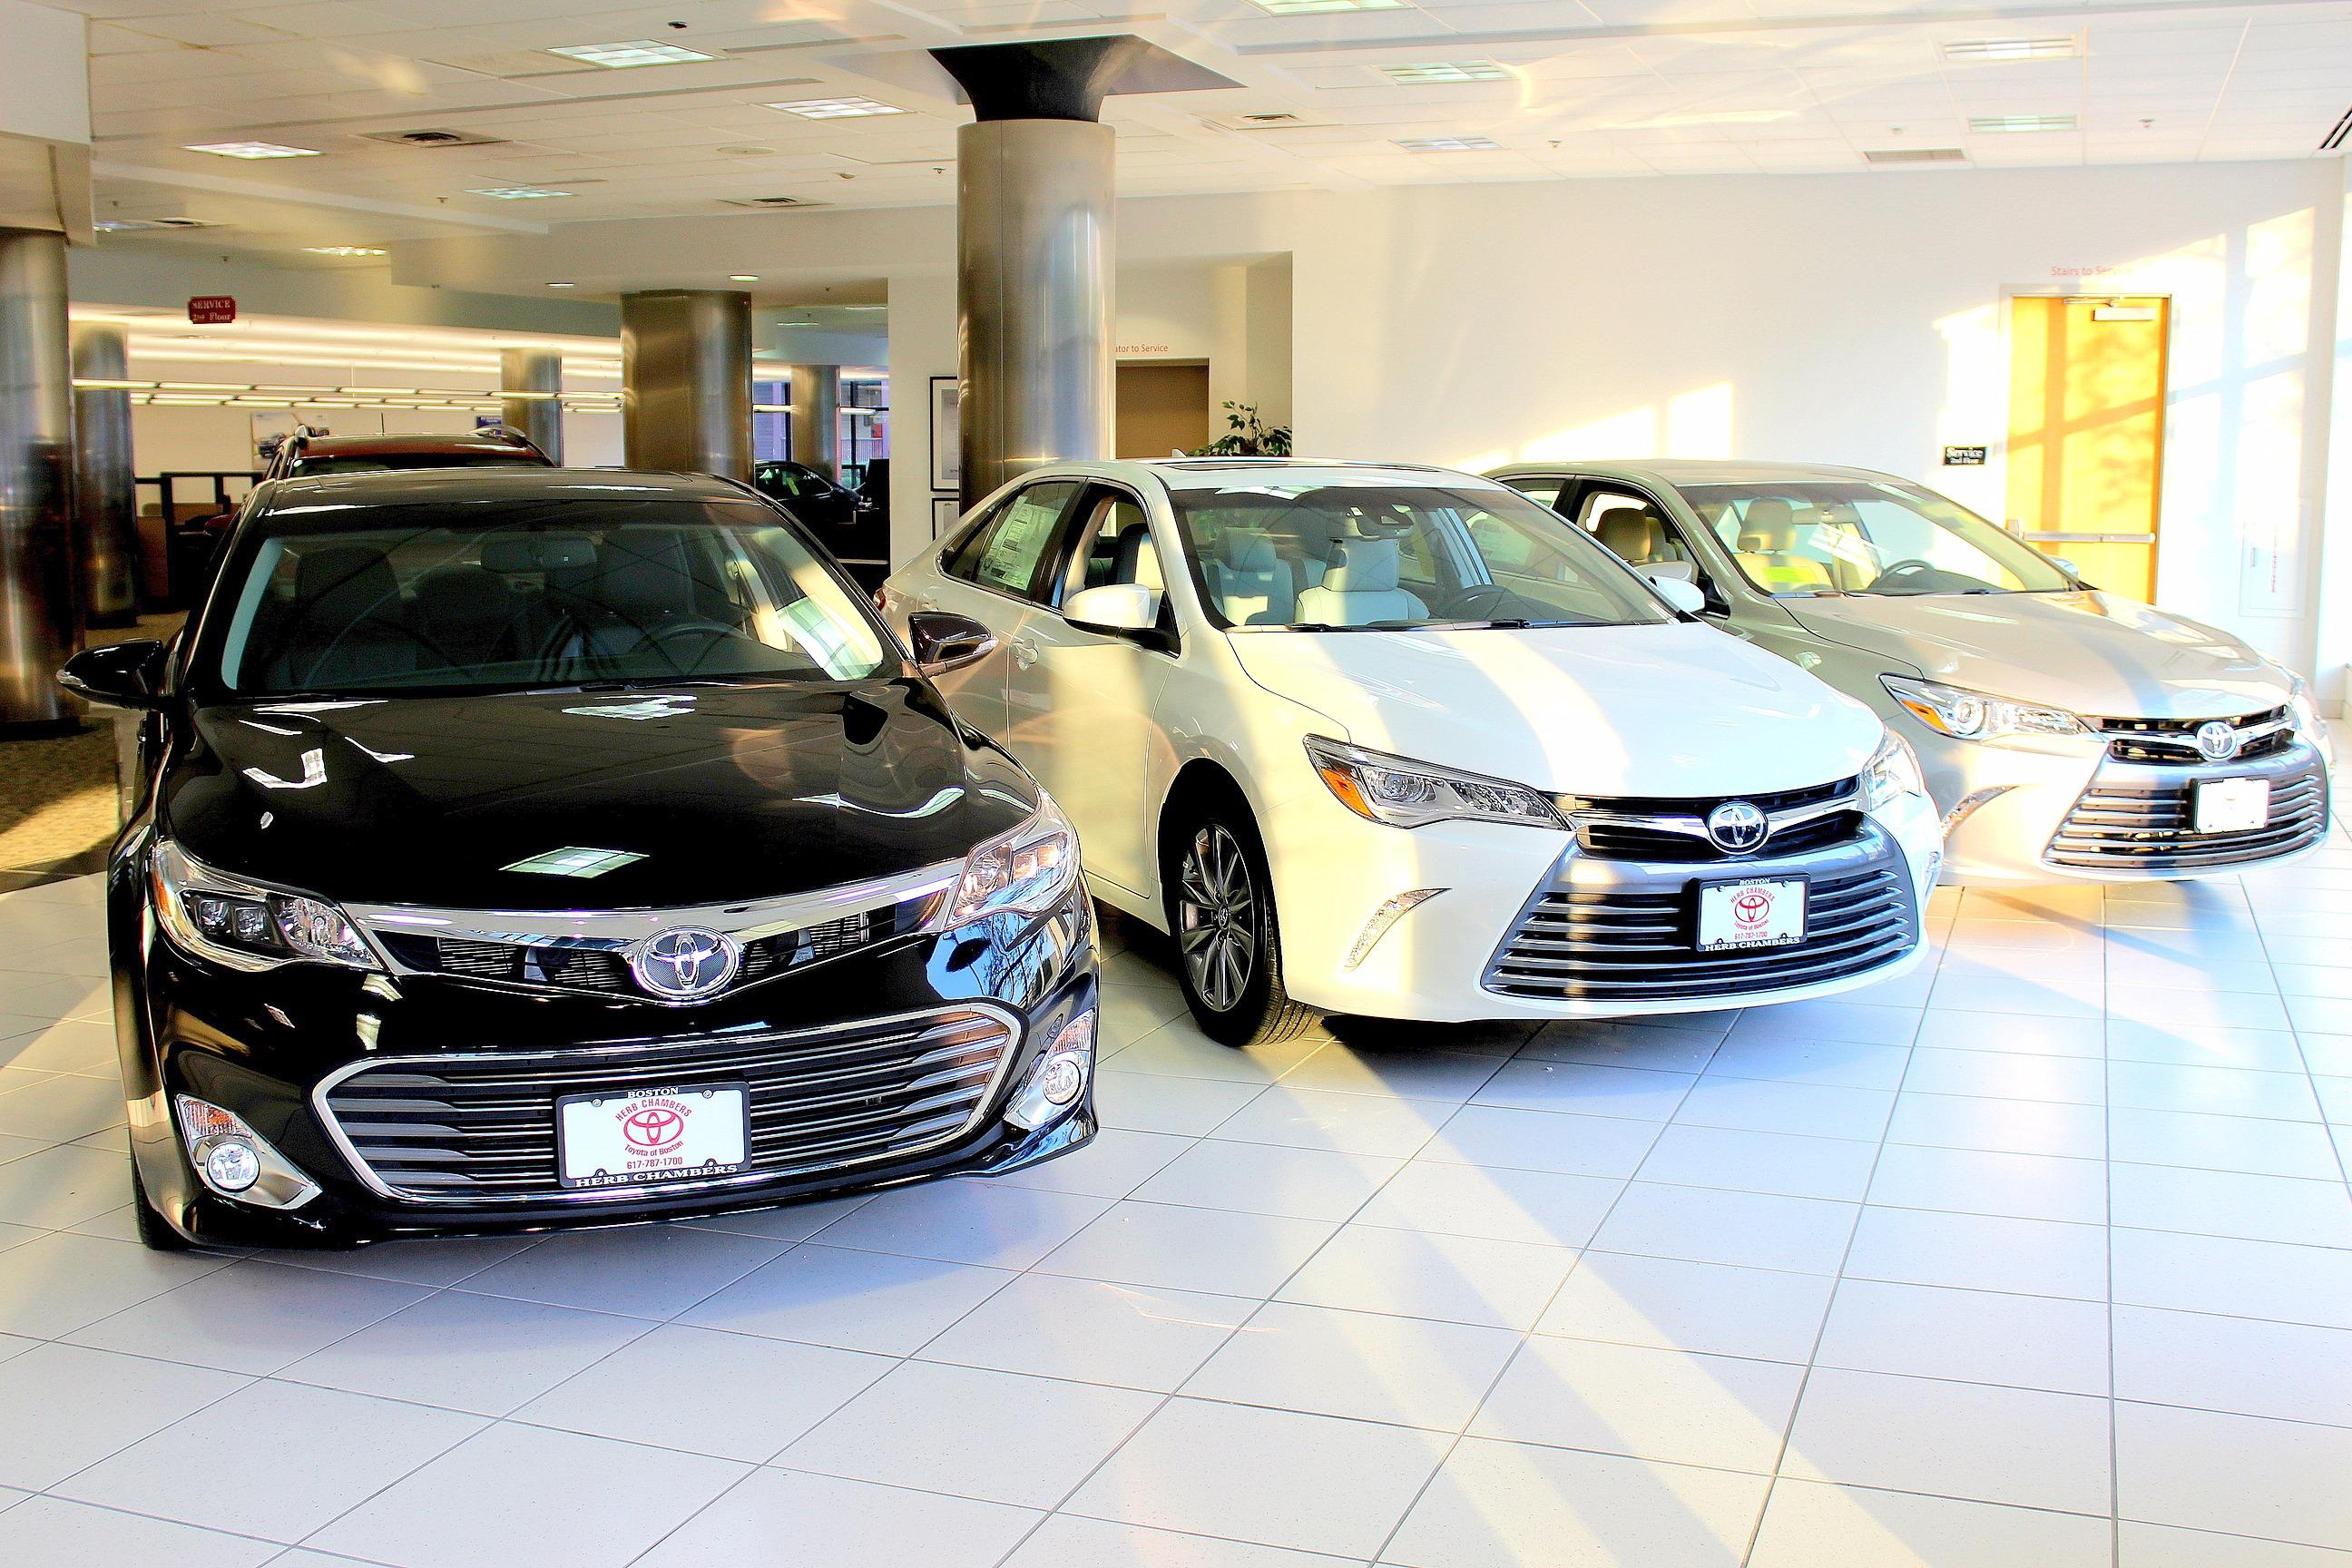 Herb Chambers Toyota Scion of Boston - Allston, MA